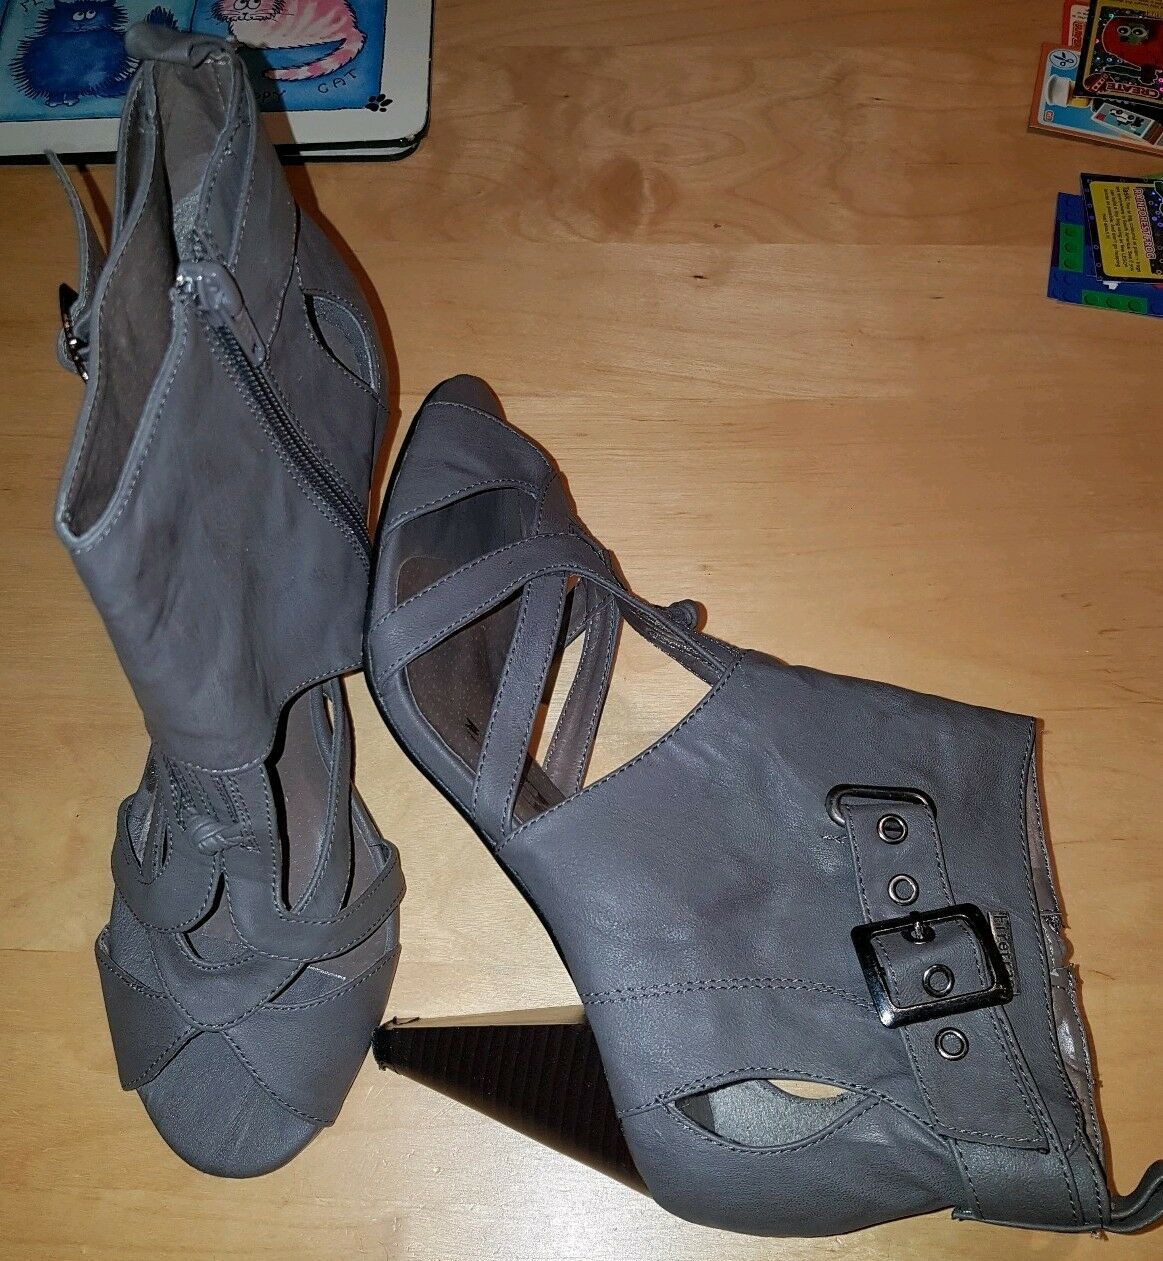 X FIRETRAP DESIGNER gris HIGH HEELED PEEP TOE ANKLE chaussures UK 6 EUR 39 WORN ONCE